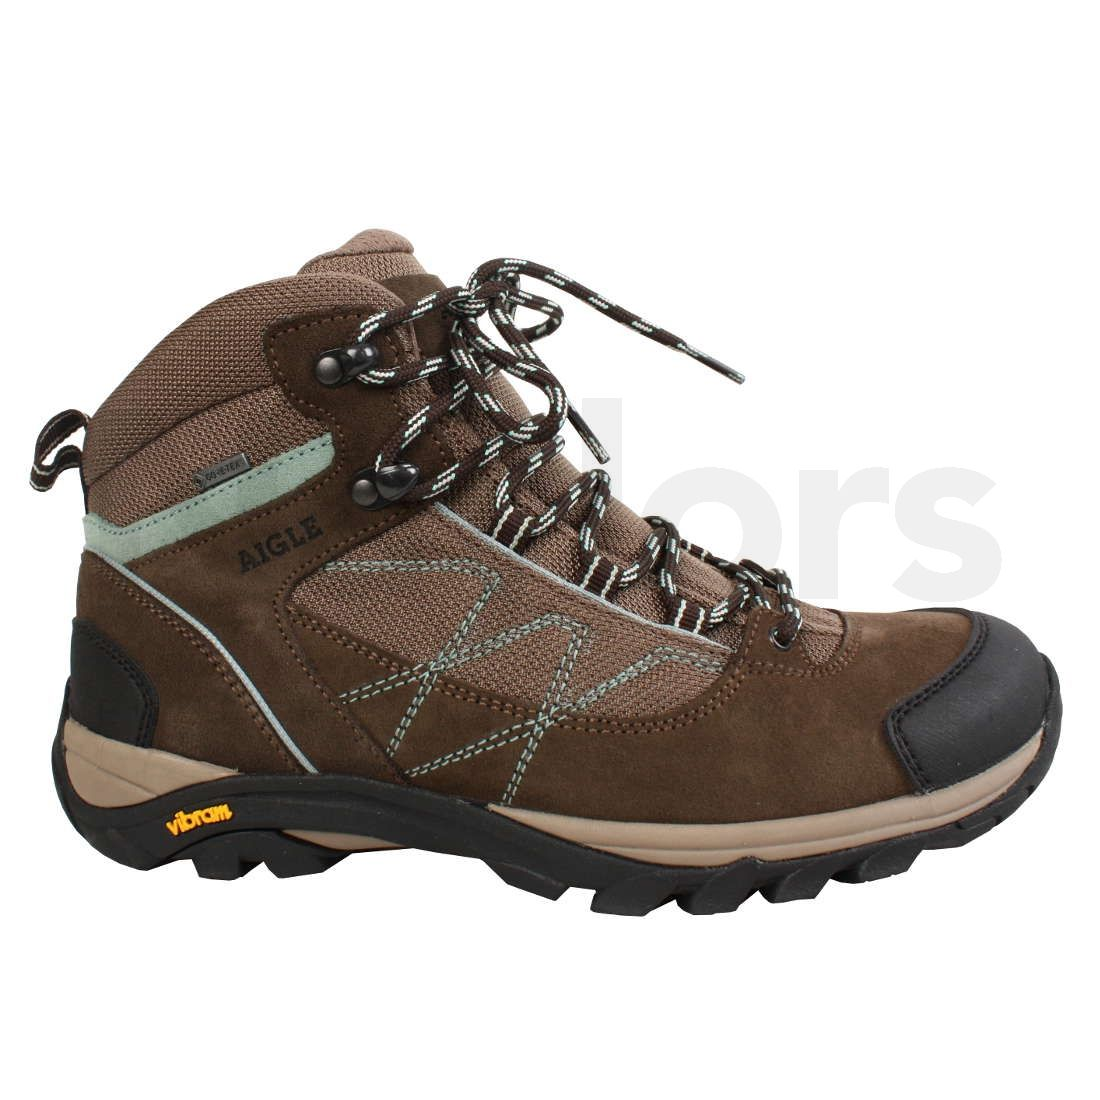 9f09ef20a8a Aigle Ladies Mooven Mid Rise Hiking Shoes Dark Brown | Naylors.com